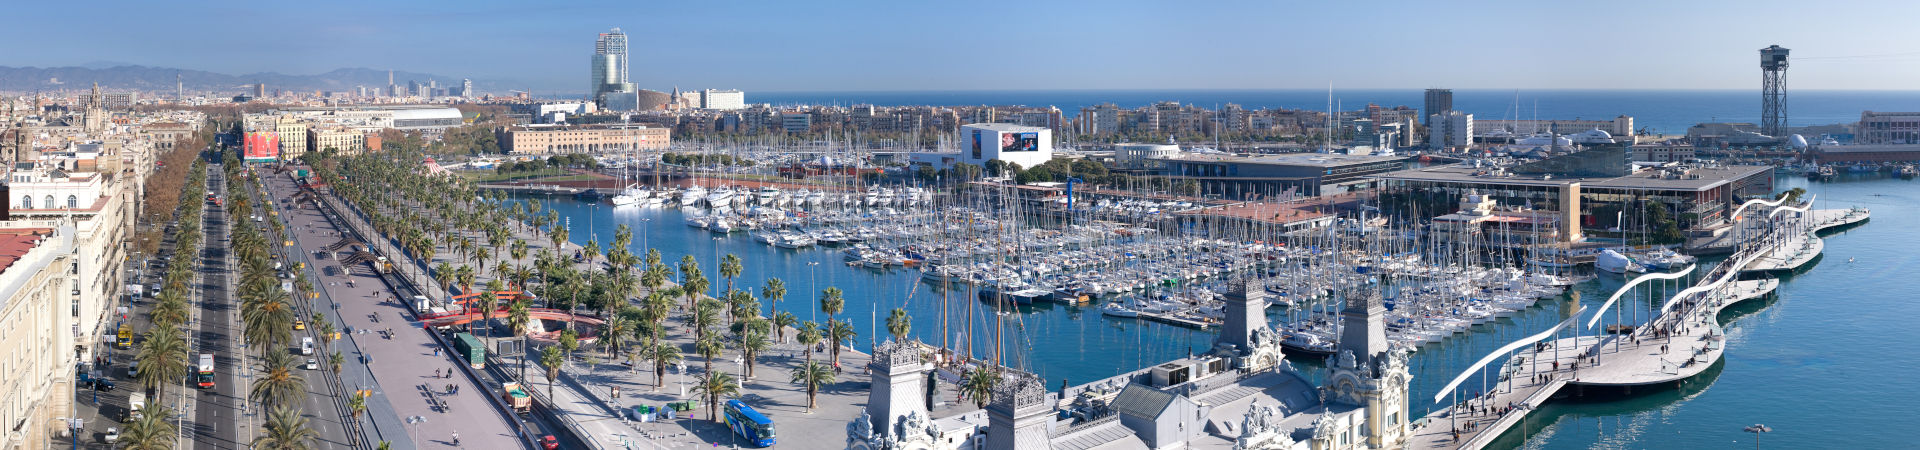 Resource image of the destination port Barcelona for the ferry route Formentera - Barcelona